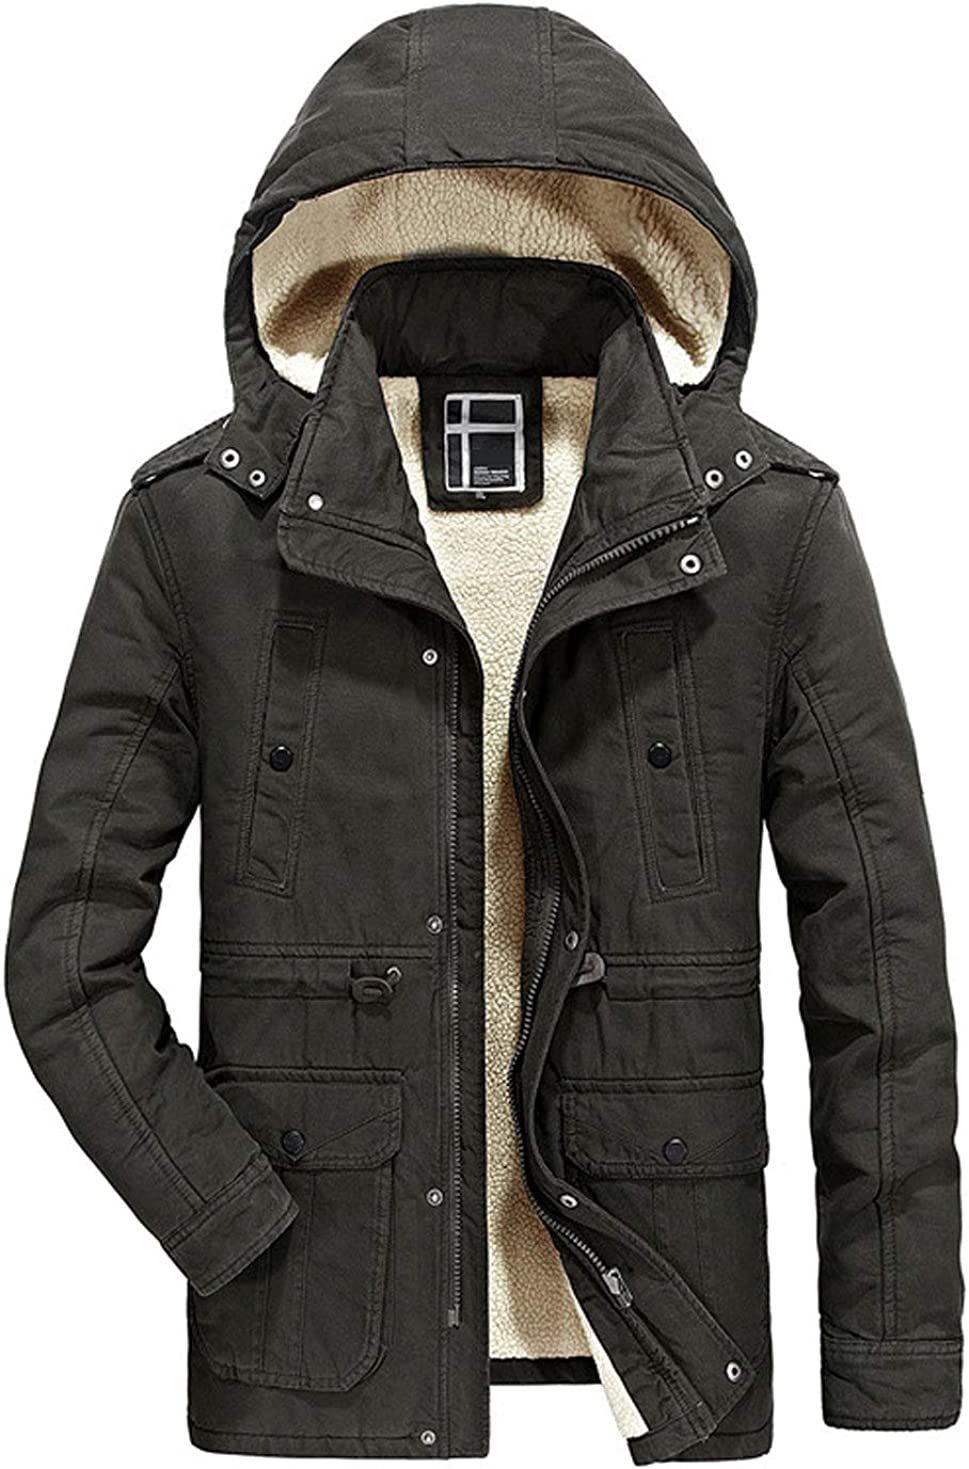 Itemnew Man's Thermal Sherpa Max 53% OFF Lined A surprise price is realized Hood Multi Pockets Detachable